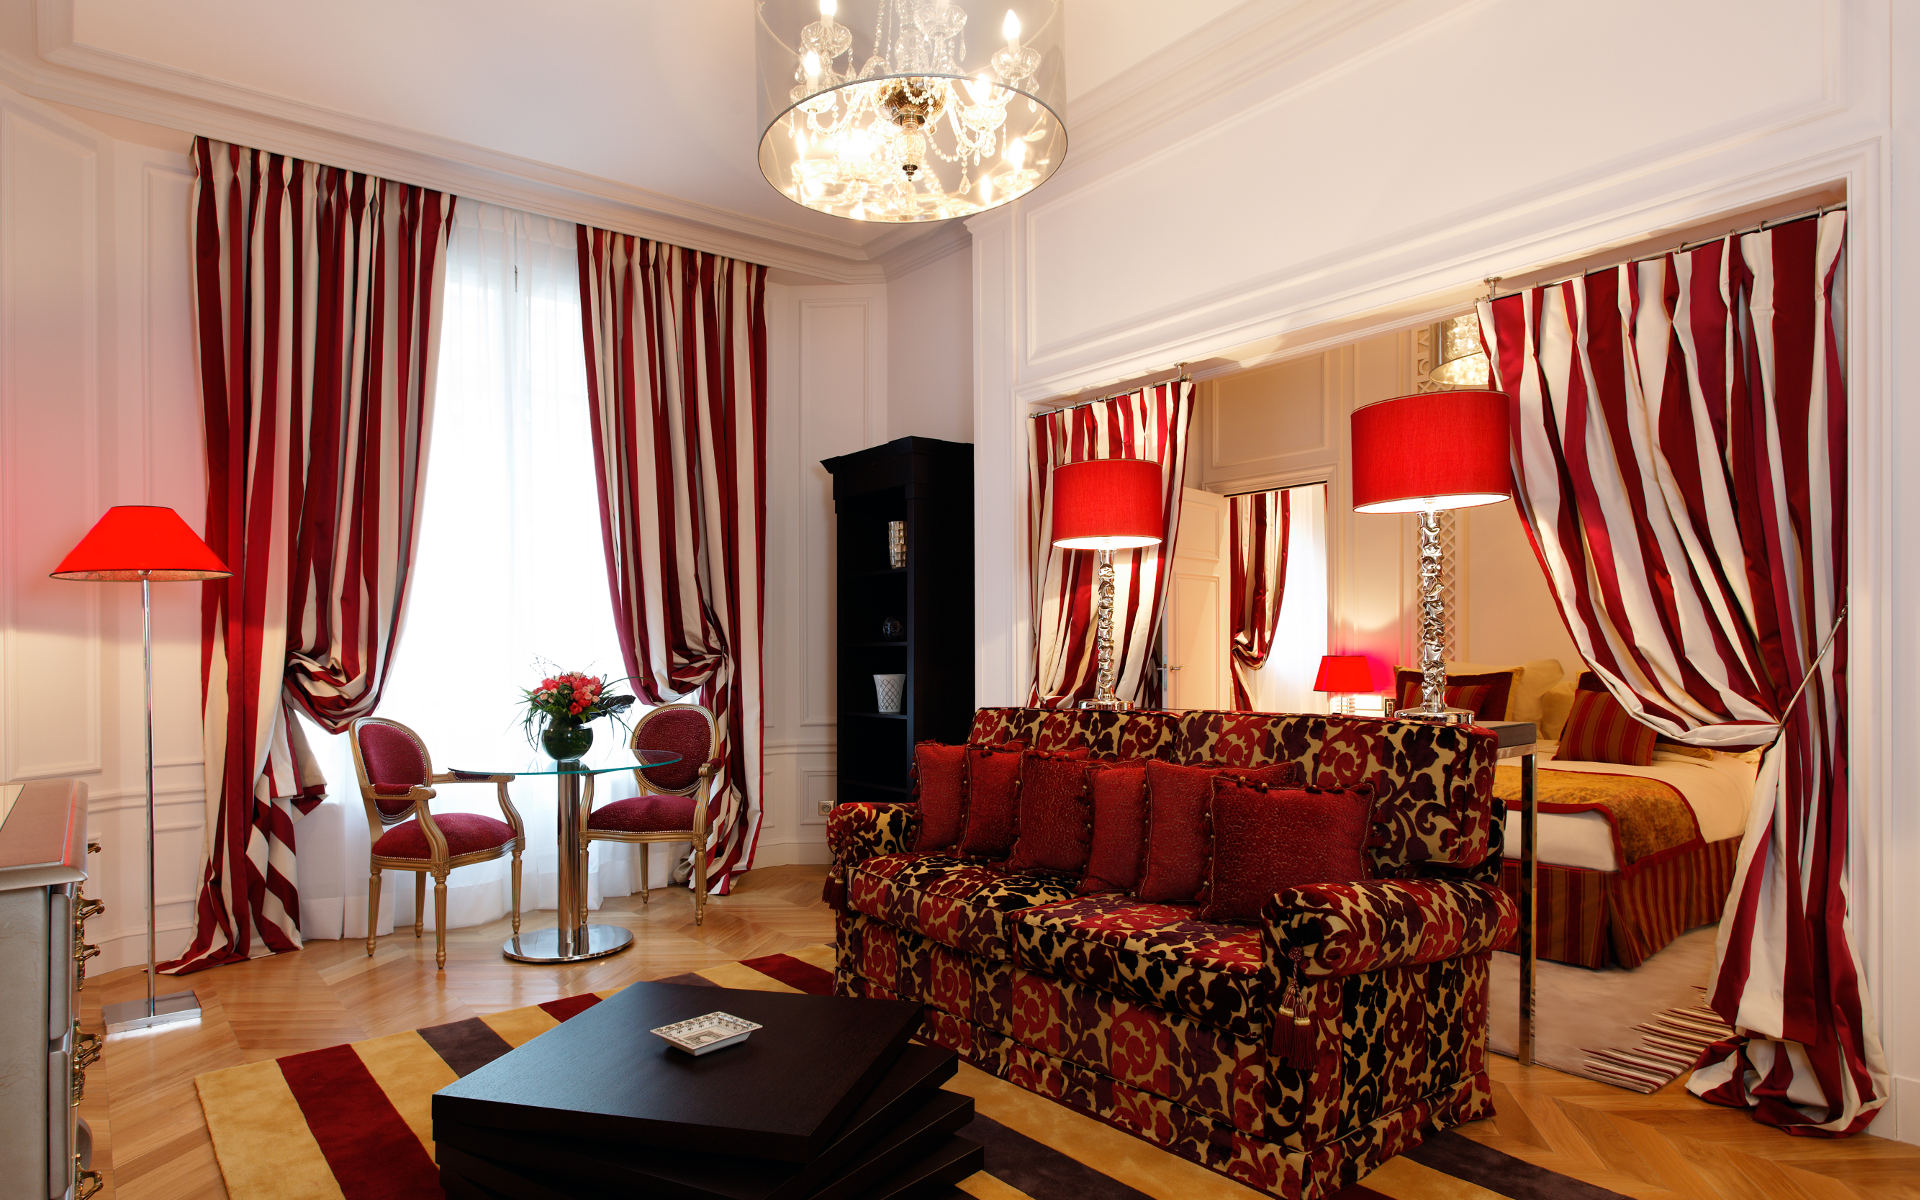 260/Suites/Suite junior/Suite Junior 1 -  Majestic Hotel-Spa.jpg